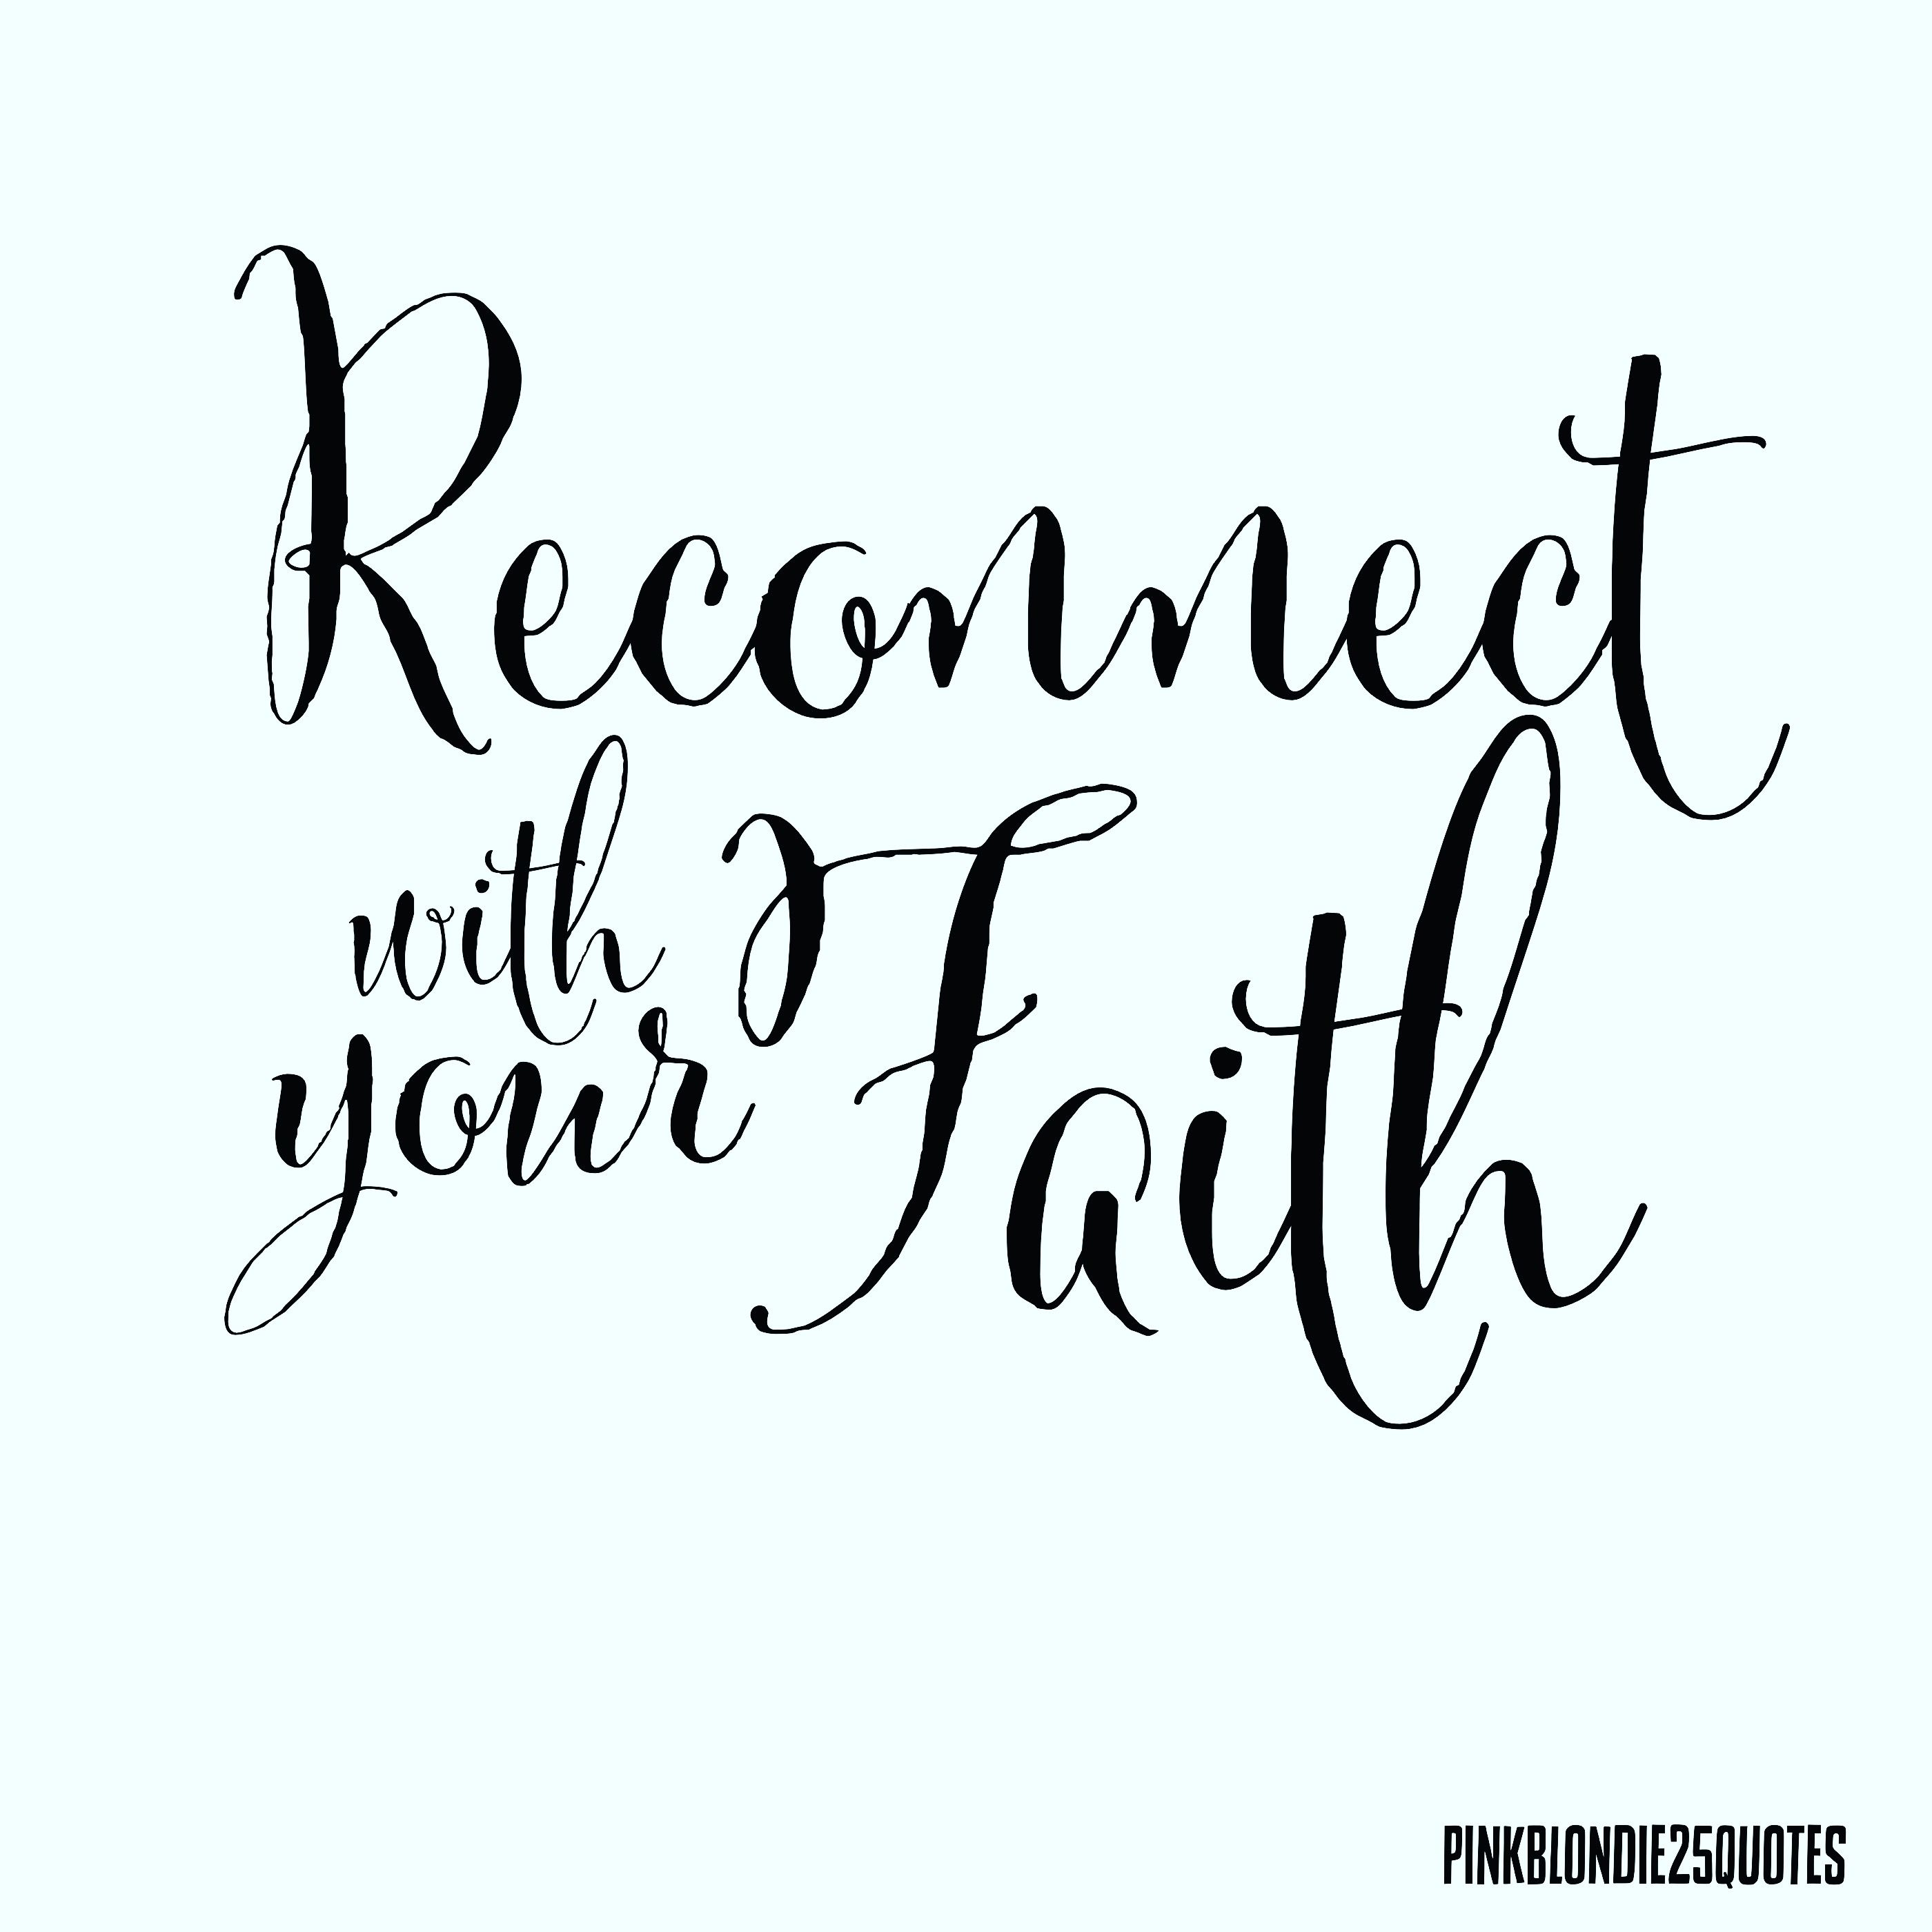 Rachel Bridges/pinkblondie25quotes #rhonnafarrer#rhonnafarrerapp#rhonnalove#rhonnafarrermuah#rhonnafarrer_app#rhonnafarrerdesigns#rhonnafarrerdesign#quotes#faith#pinkblondie25quotes#rhonnadesigns_app#inspiration#dailyquotes#truth#bibleverses #blessed#Godslove#glory#rhonnadesigns